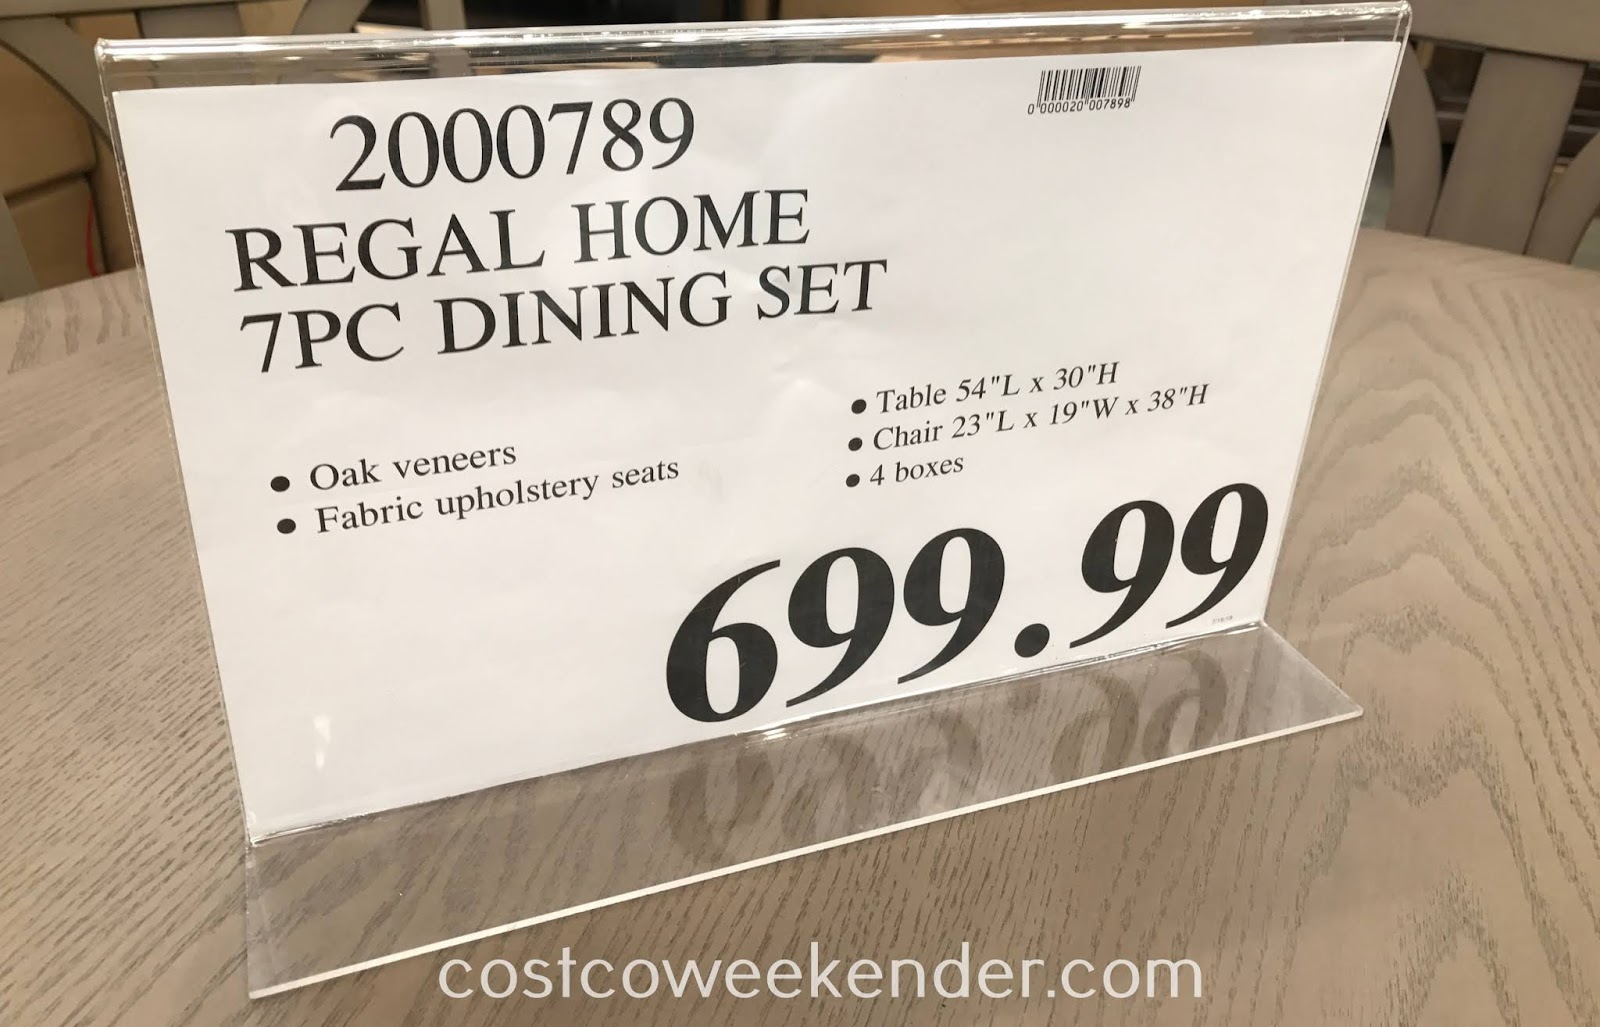 Deal for the Regal Home 7-piece Dining Set at Costco